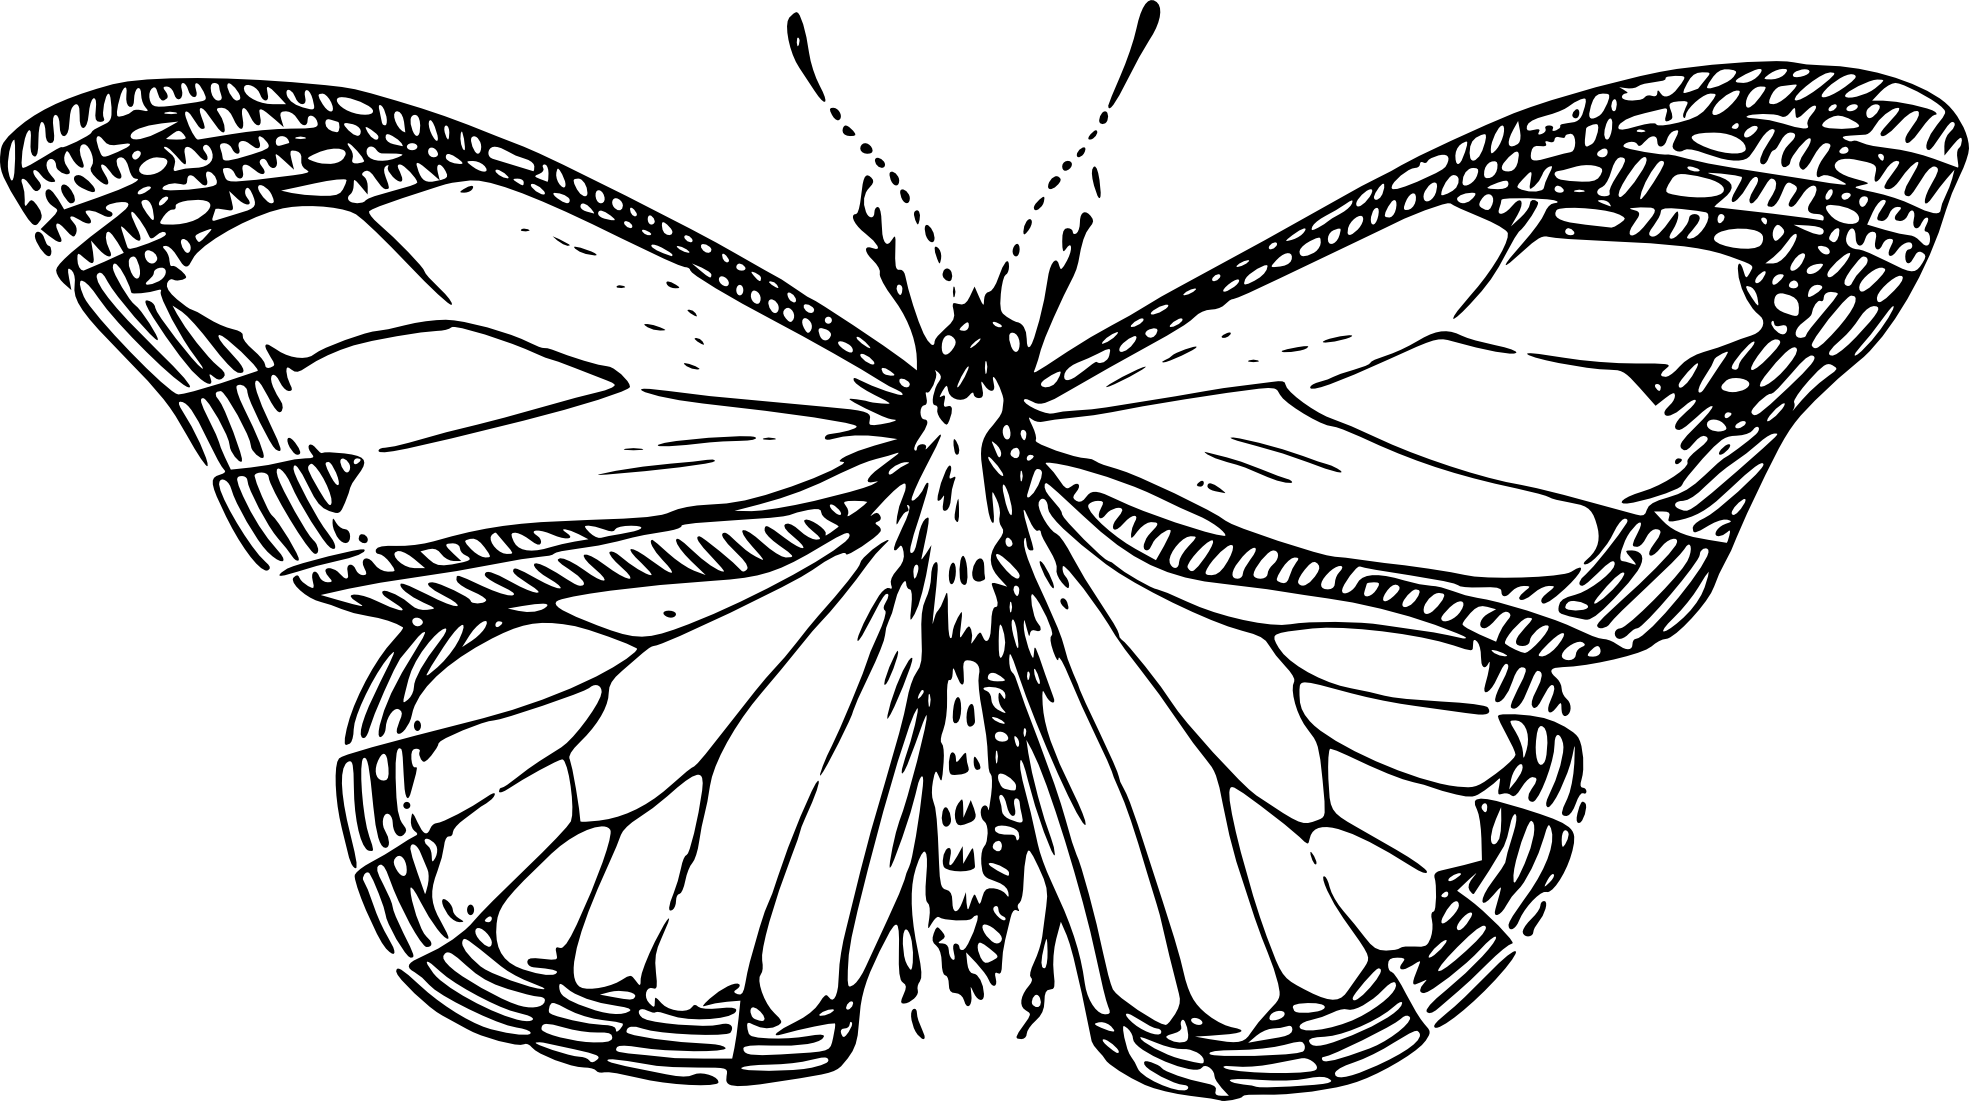 Line Drawing Butterfly : Butterfly drawings black and white clipart best